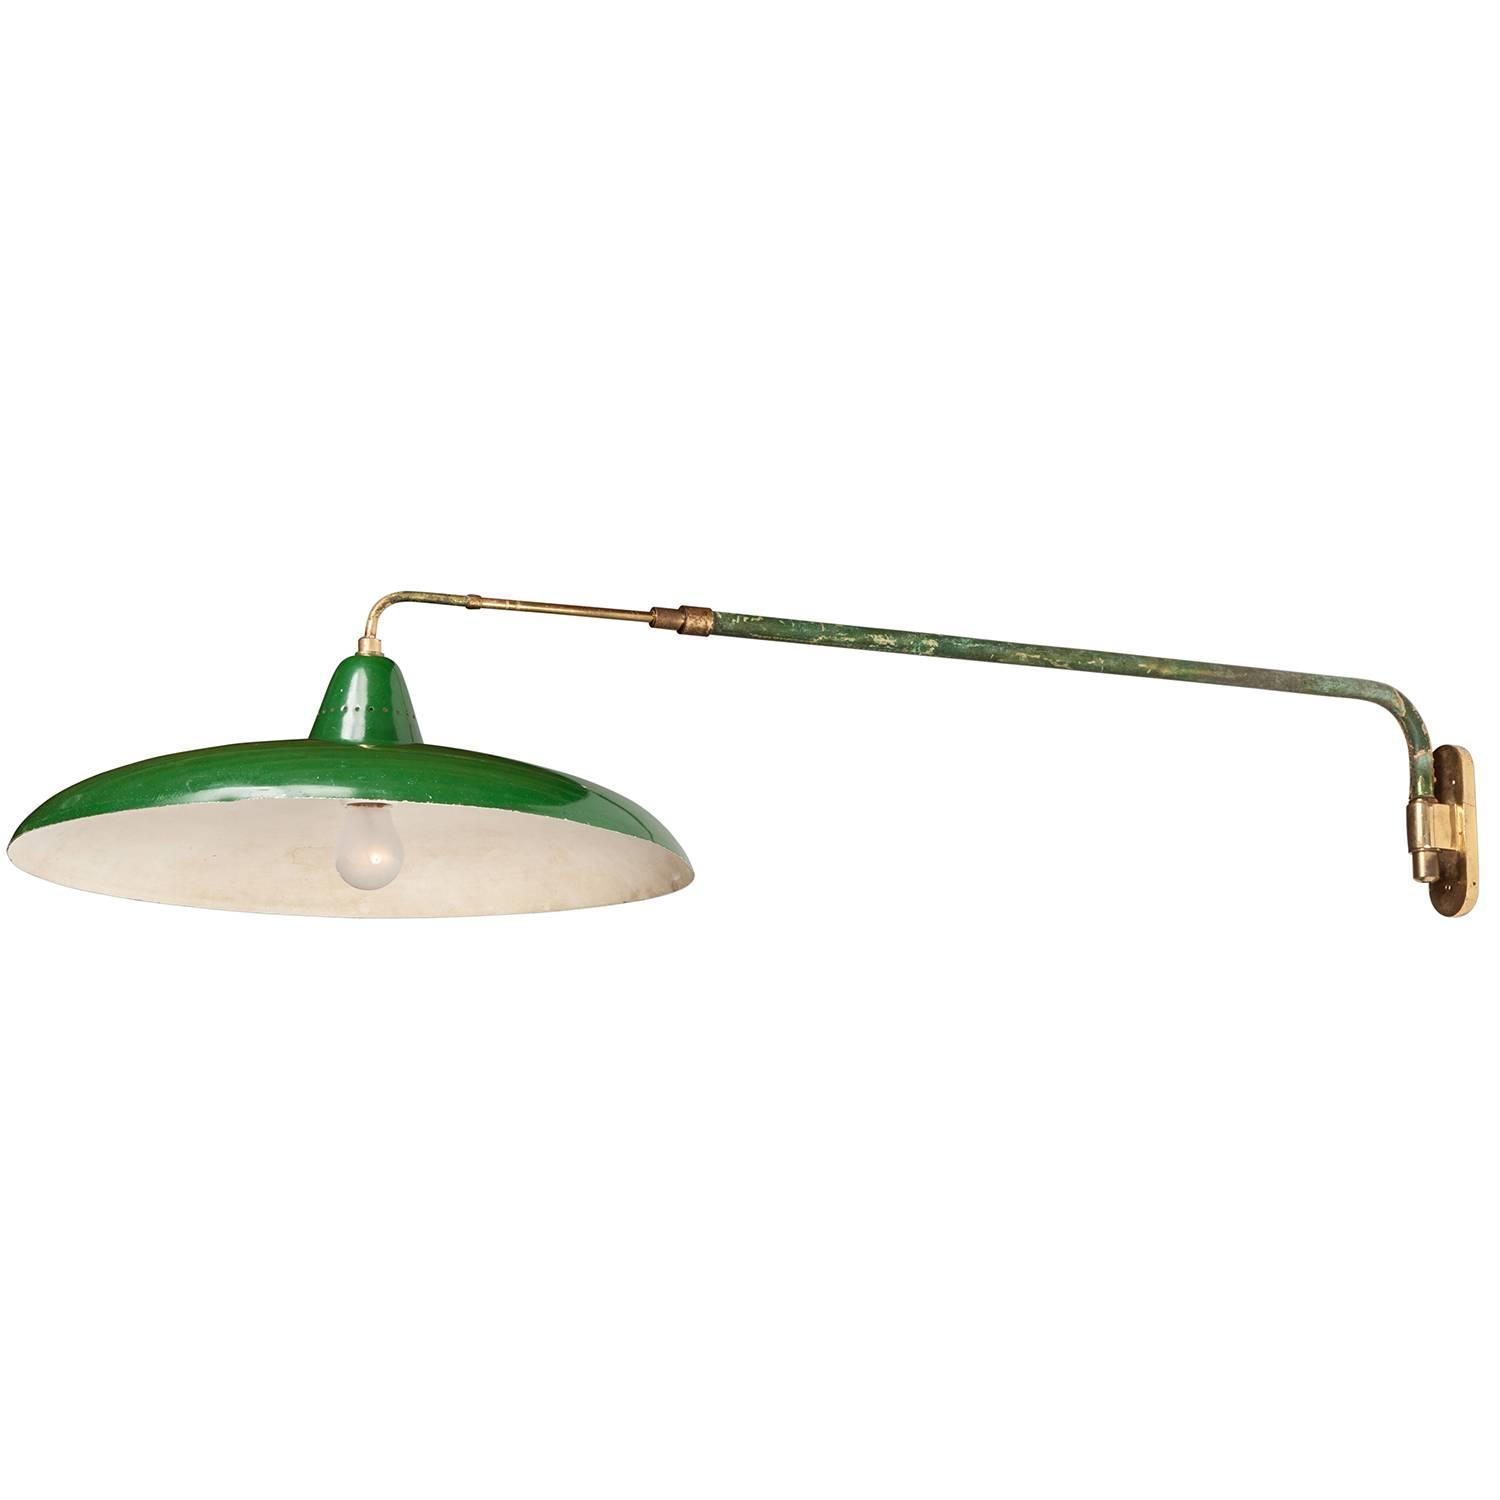 Wall Extension Light : Green Extension Arm Lamp at 1stdibs